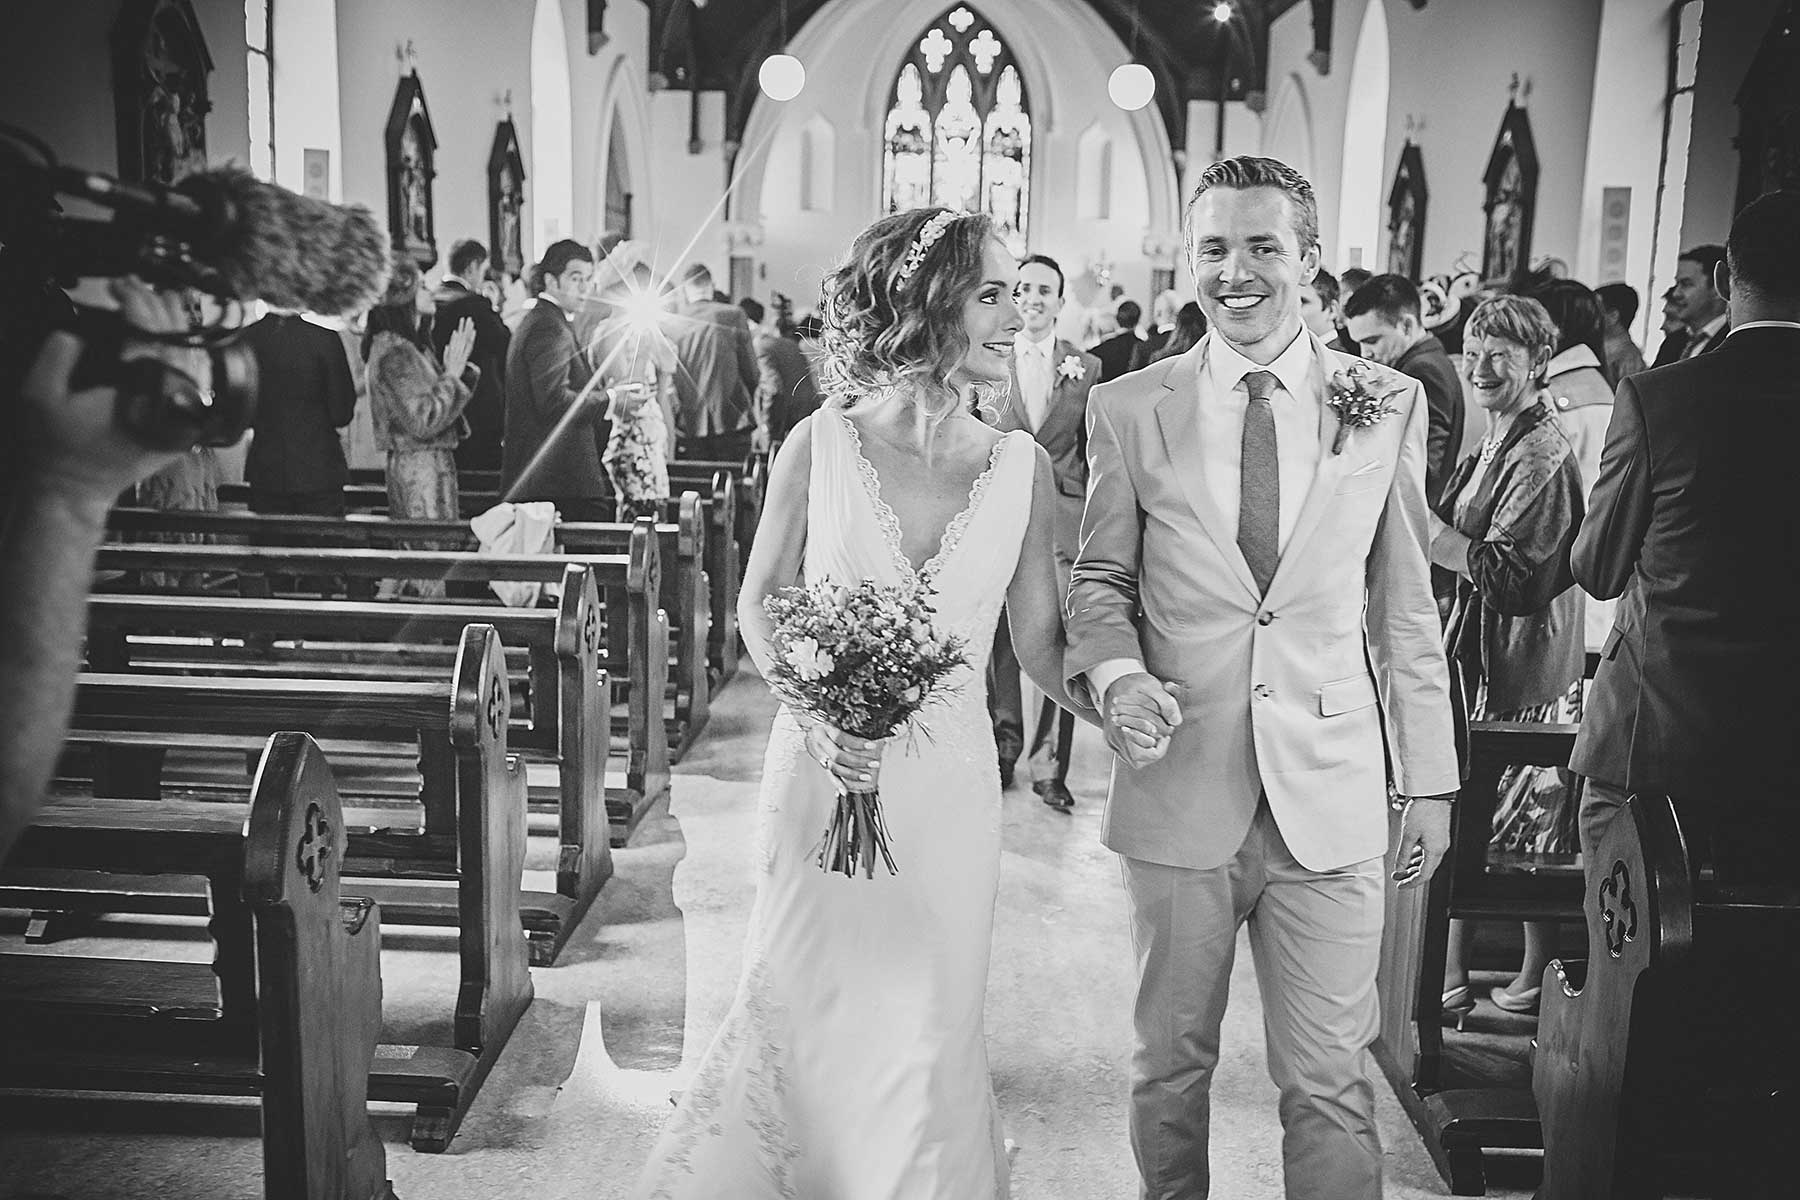 0215 - Meabh and Pauric | Wedding at Lisnavagh House co.Carlow